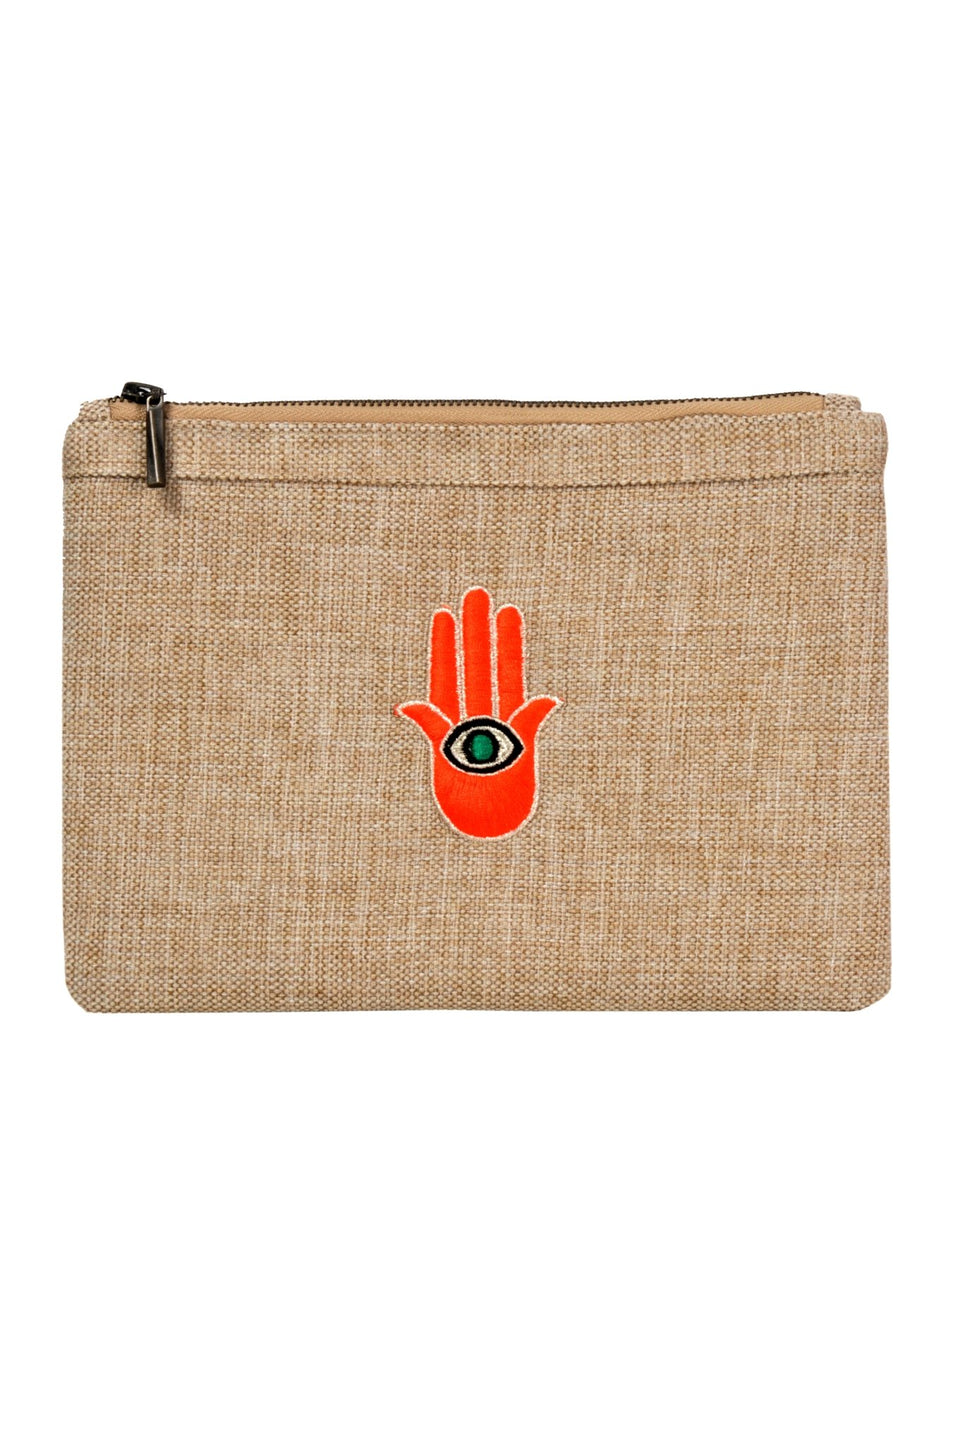 POUCH ORANGE HAND - MINE BAGS AND ACCESSORIES - MIRA Y MANO